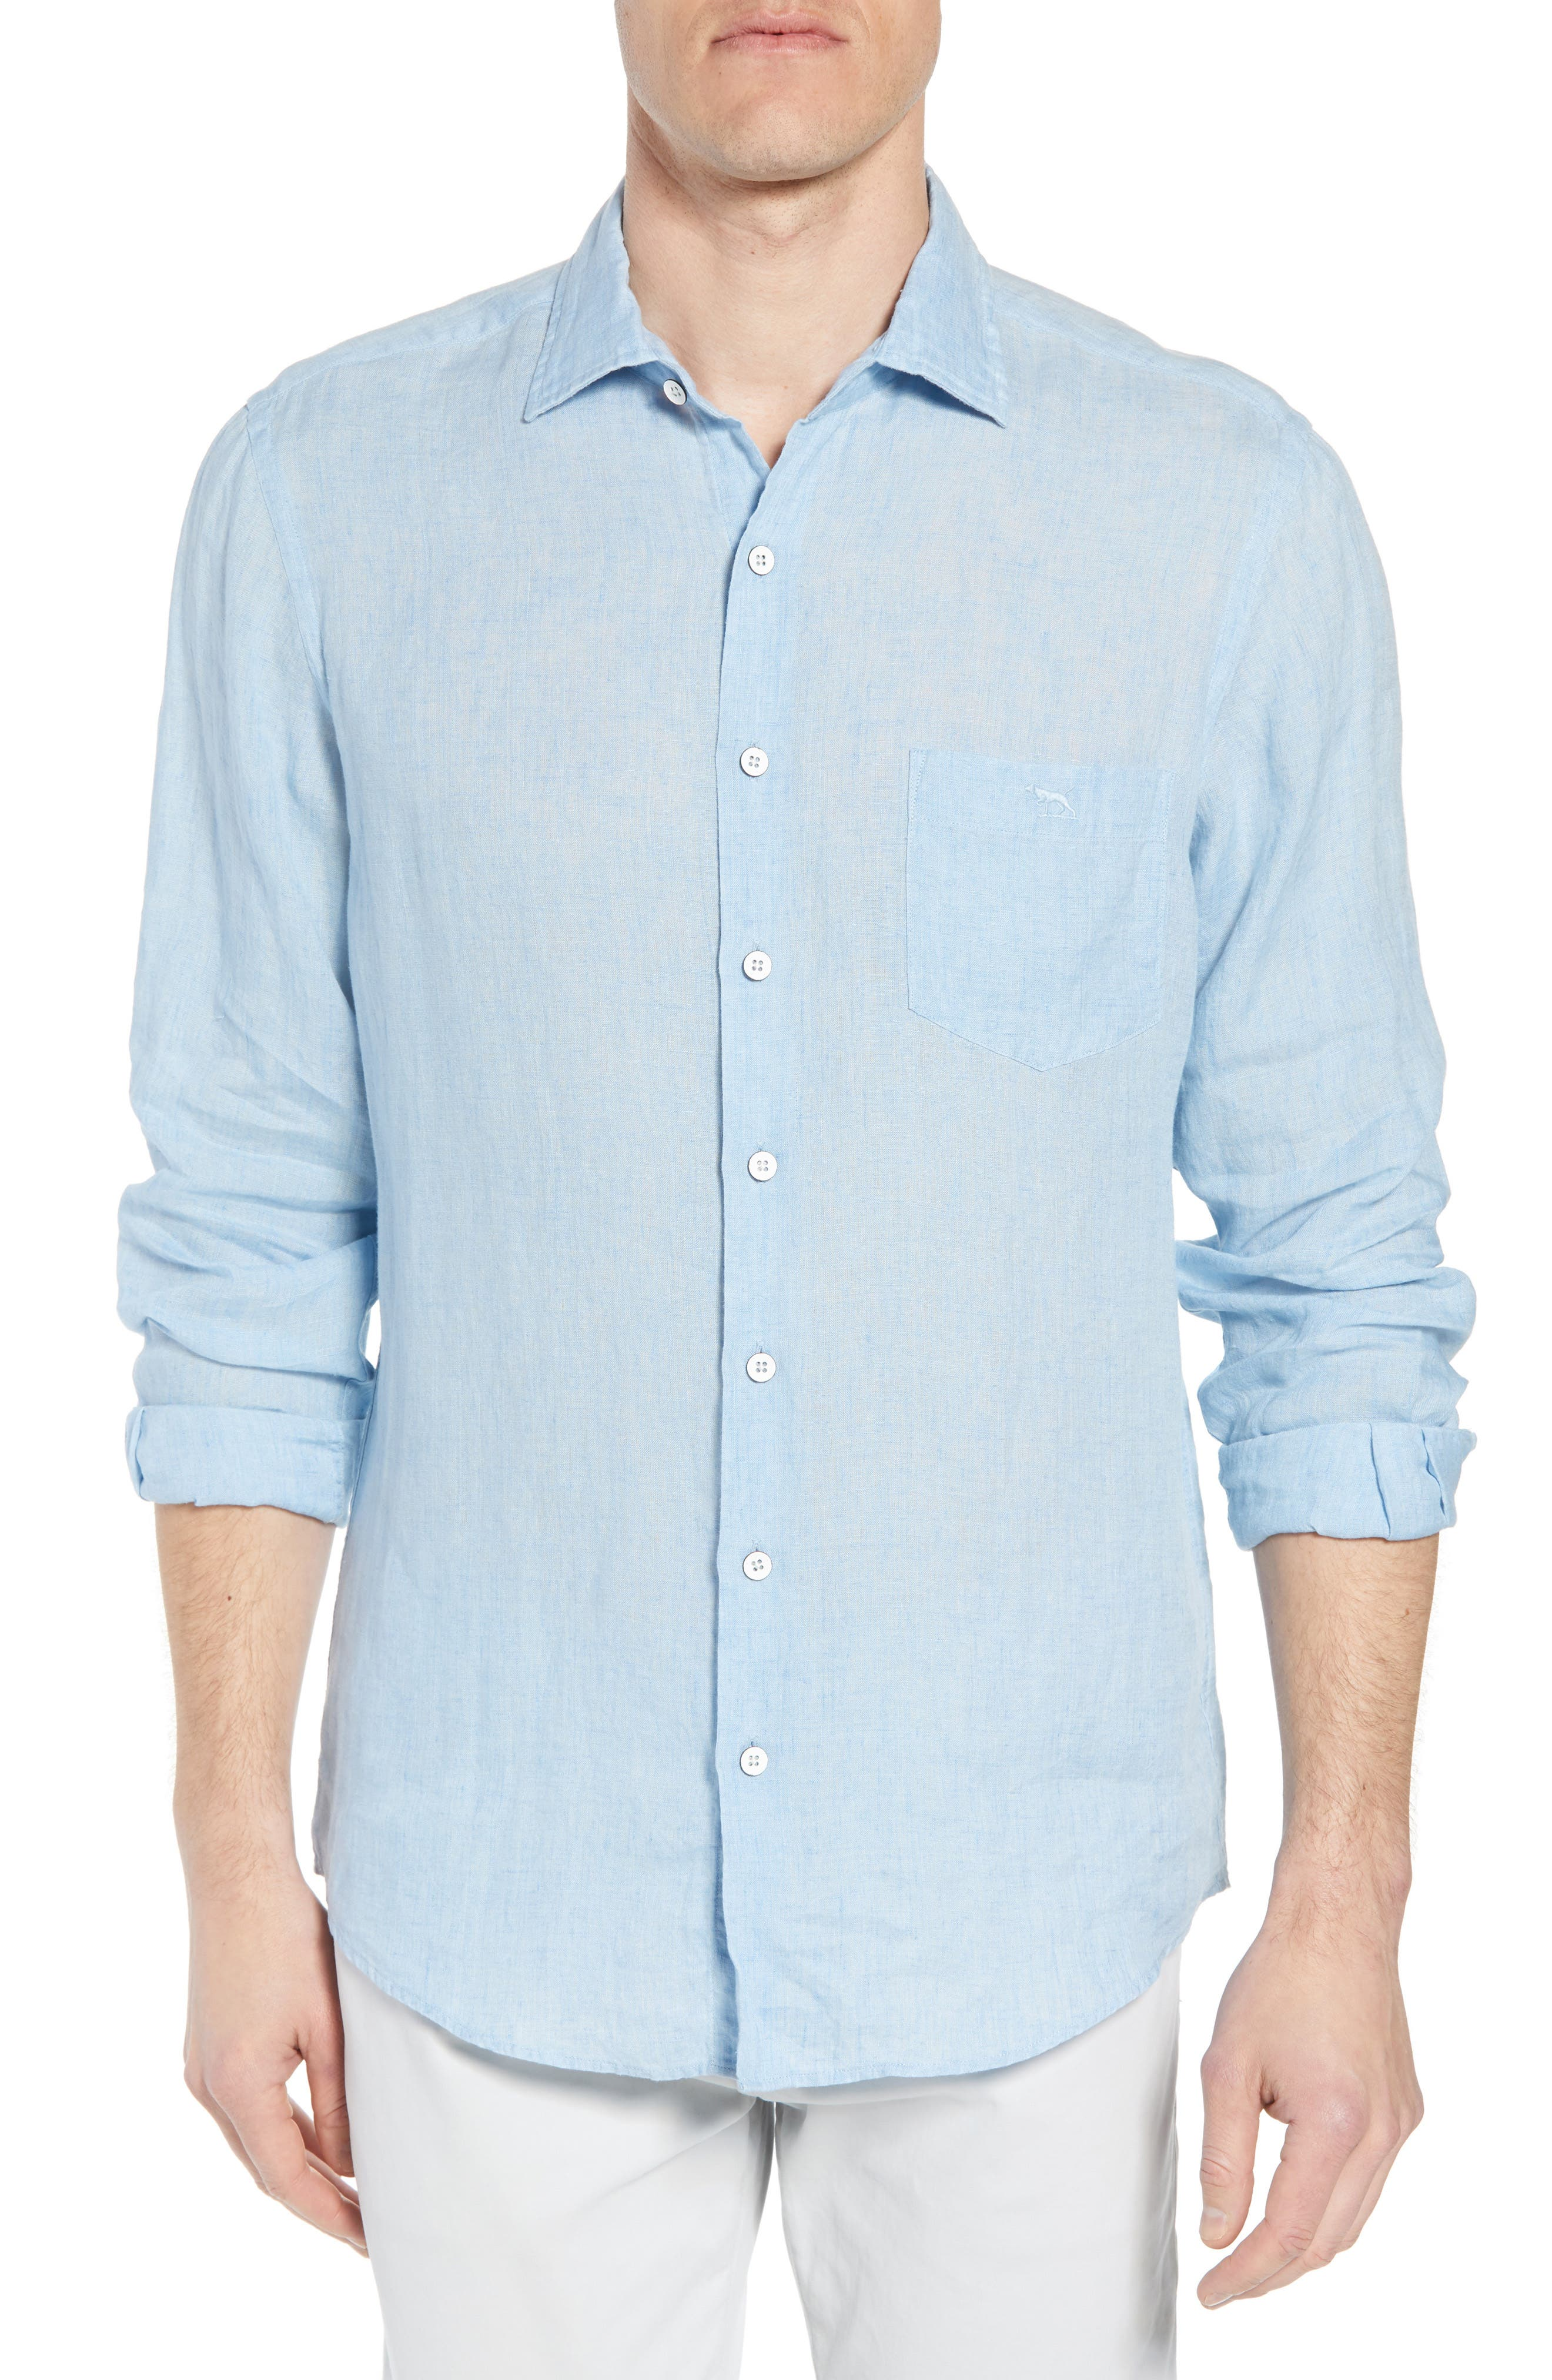 Harris Bay Regular Fit Linen Sport Shirt,                             Main thumbnail 1, color,                             STONEWASH